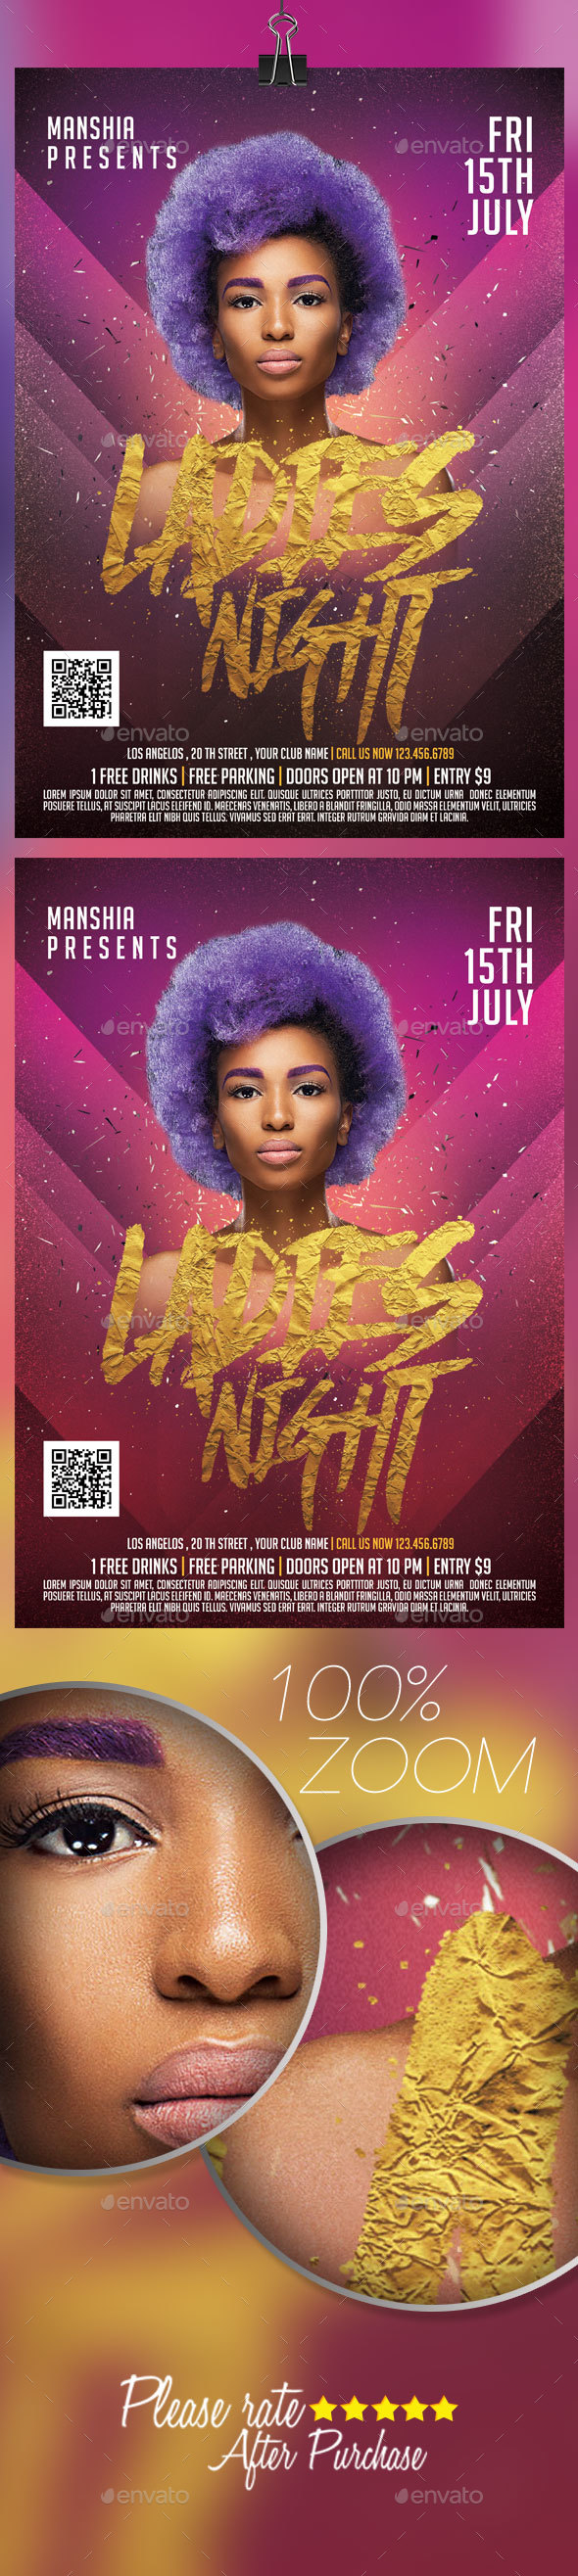 Ladies Night Flyer Templates - Clubs & Parties Events